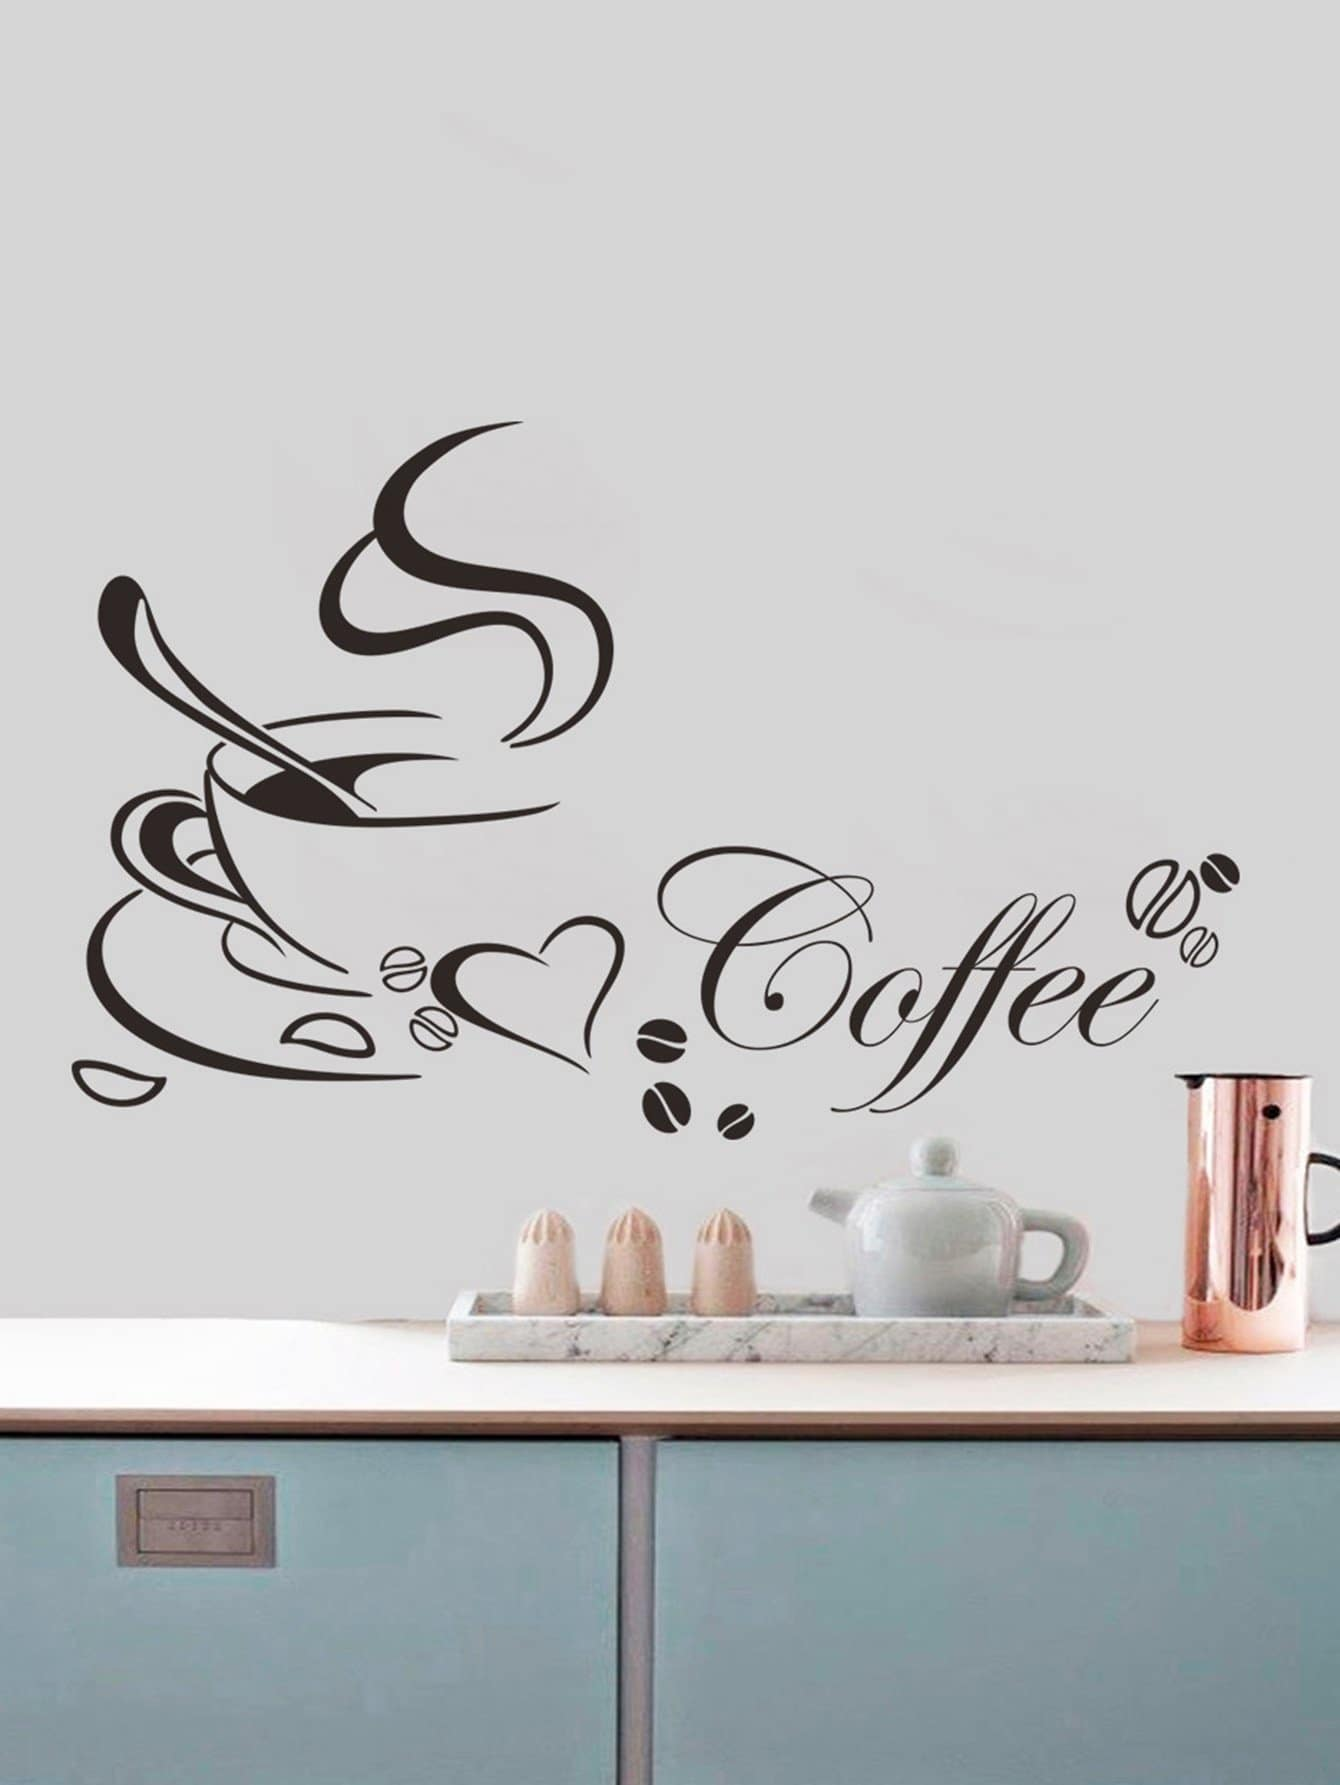 Coffee Wall Decal family wall quote removable wall stickers home decal art mural